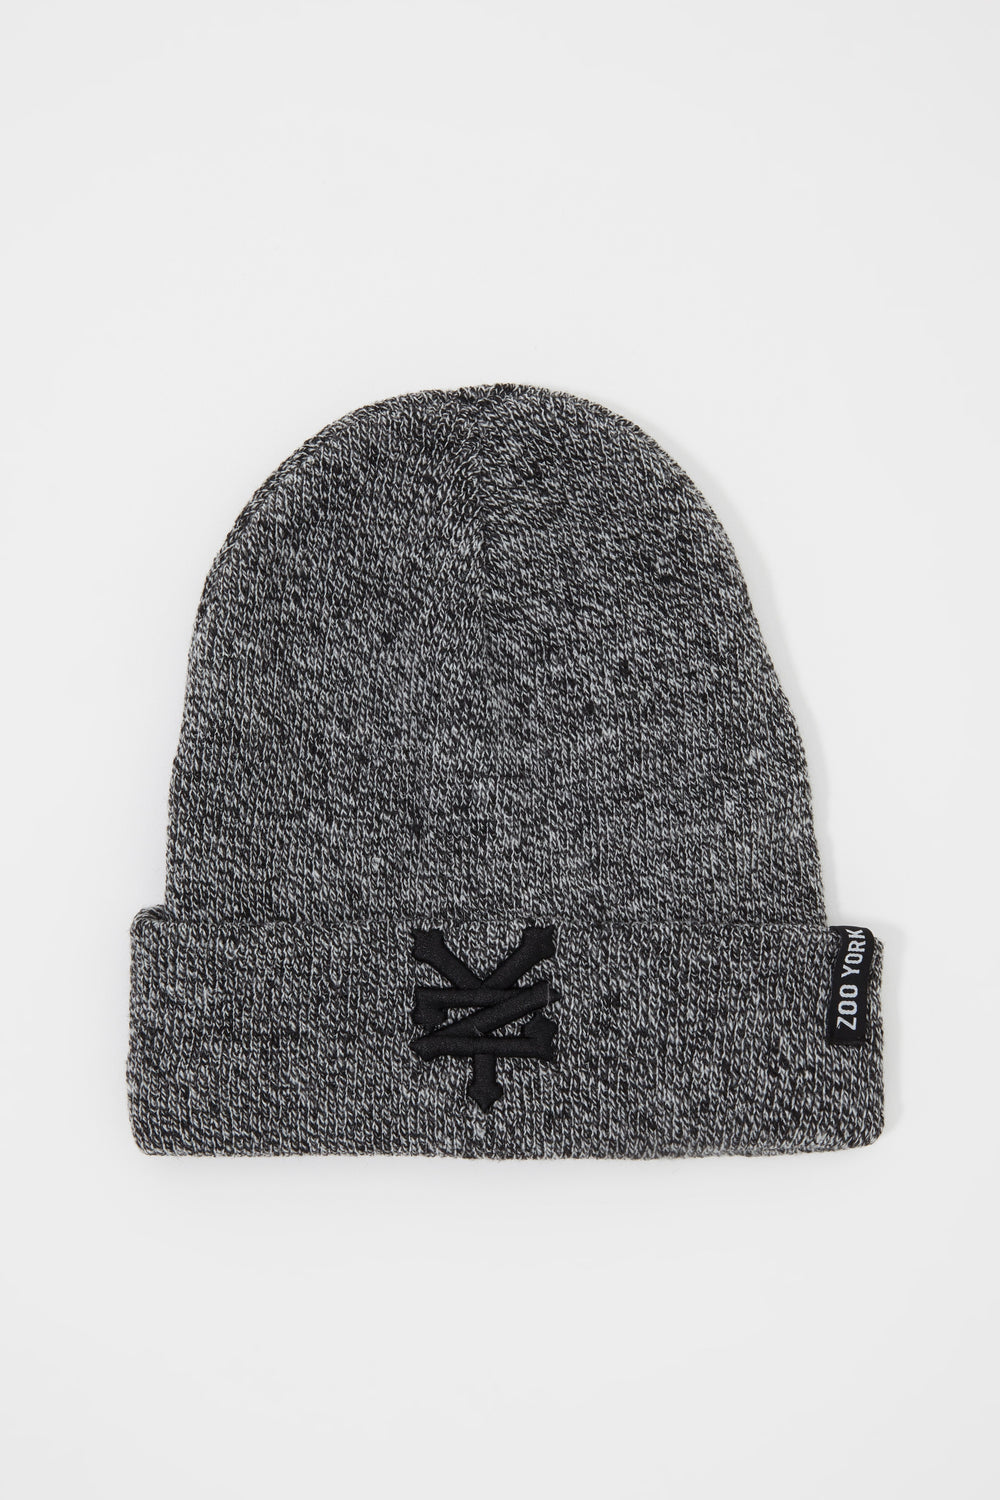 Zoo York Mens Embroidered Beanie Black with White